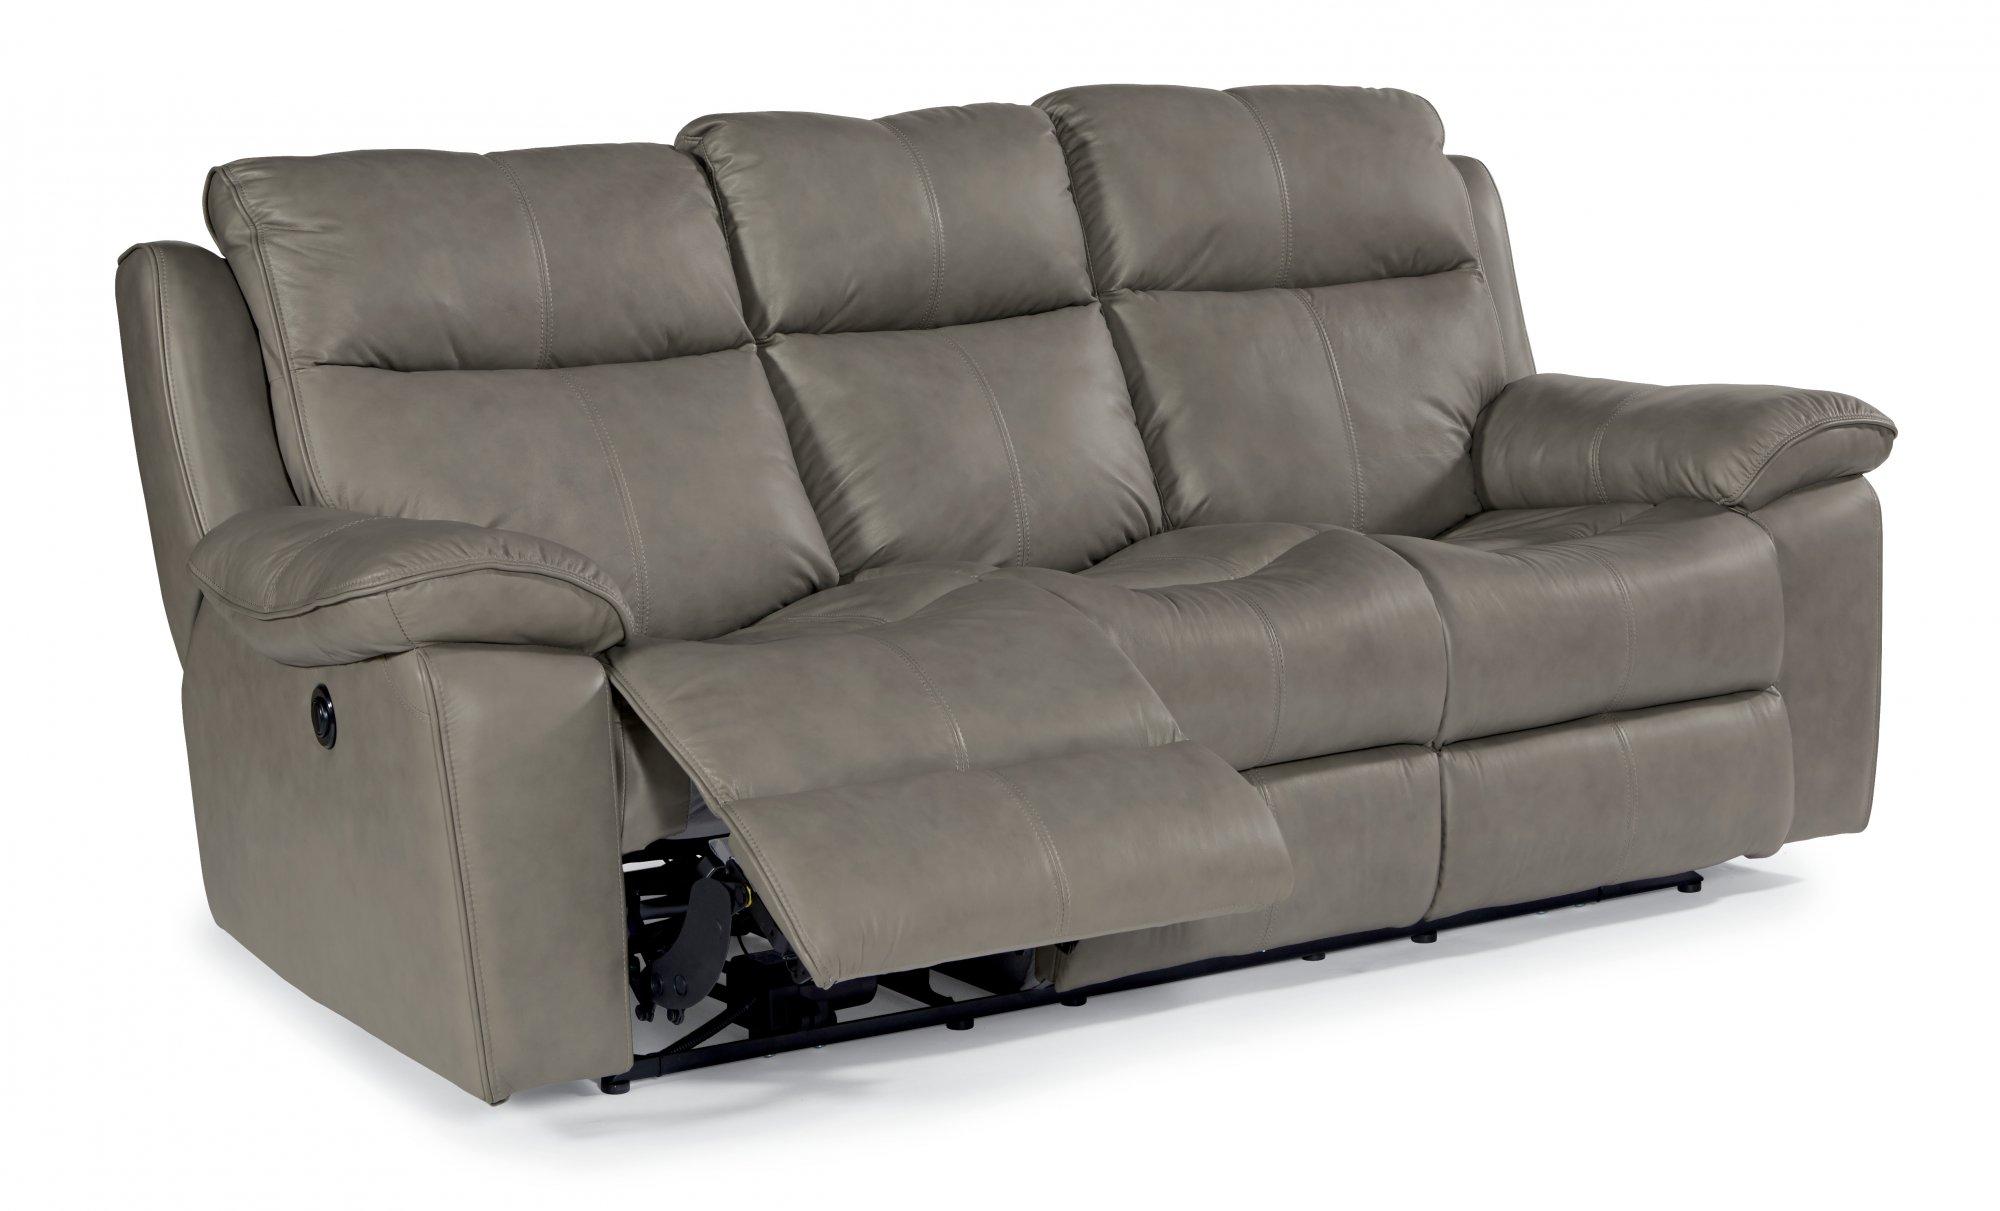 Flexsteel Reclining Sofa Julio Refil